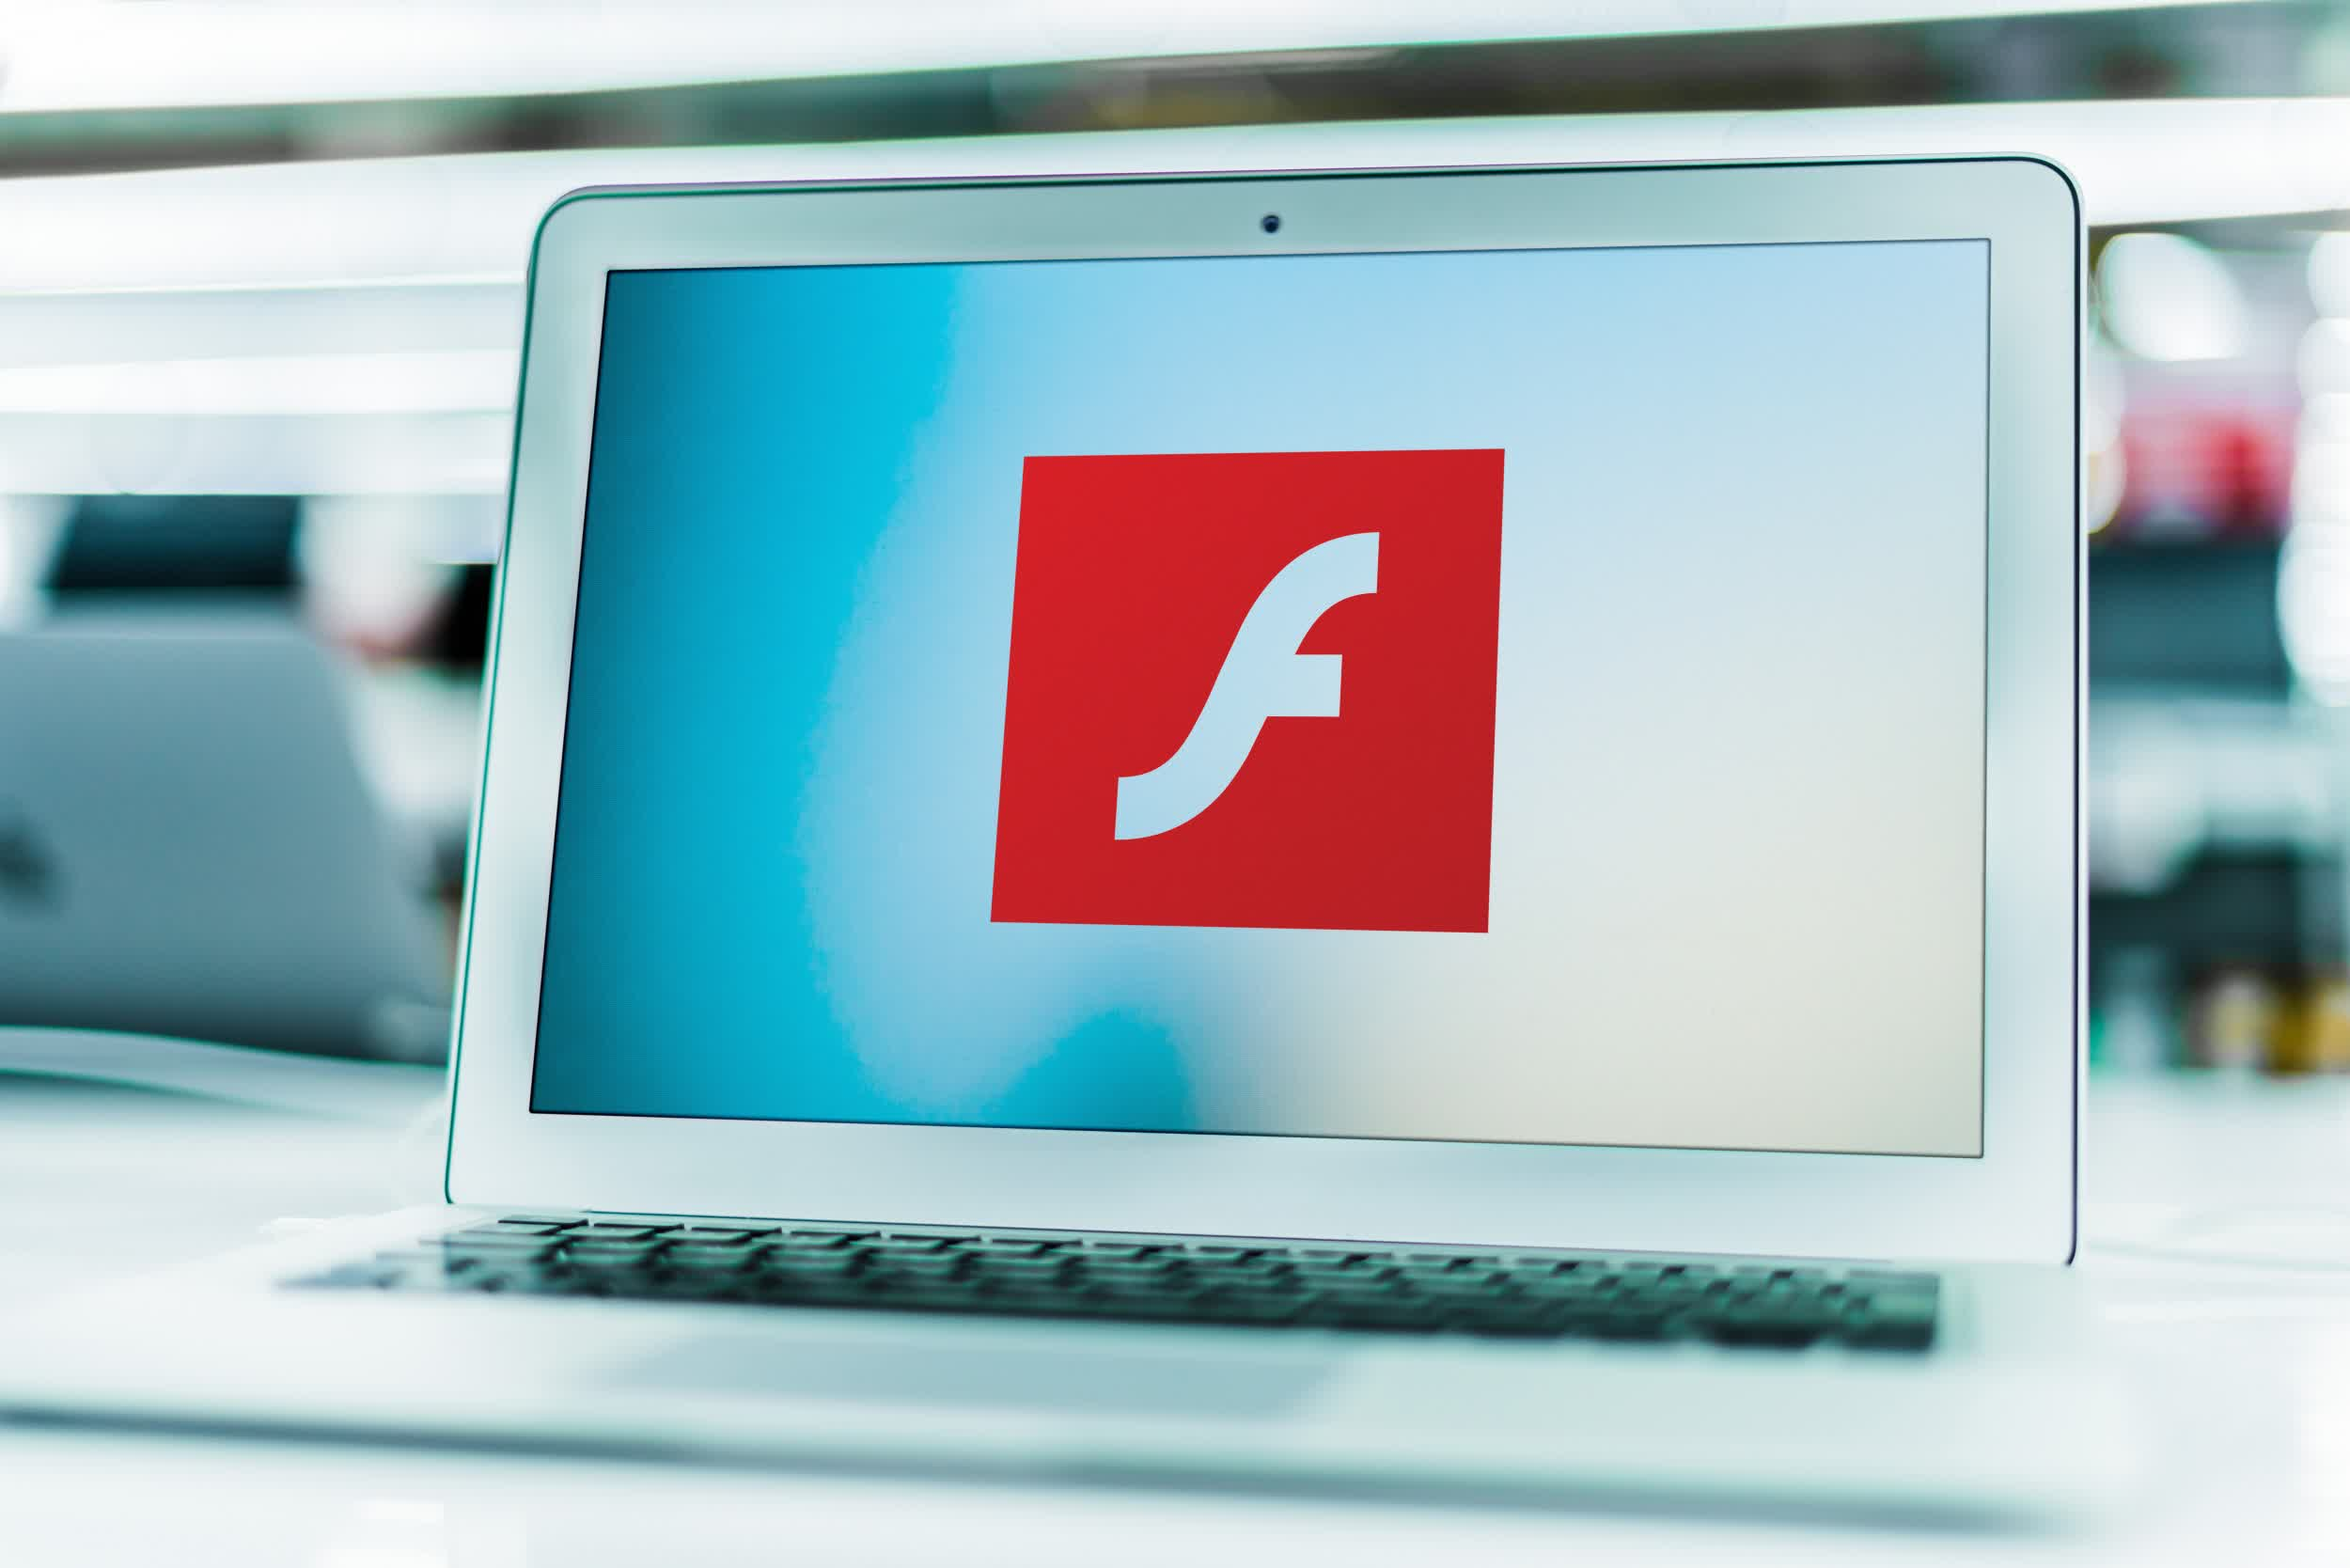 Microsoft will fully remove Adobe Flash from Windows 10 in July